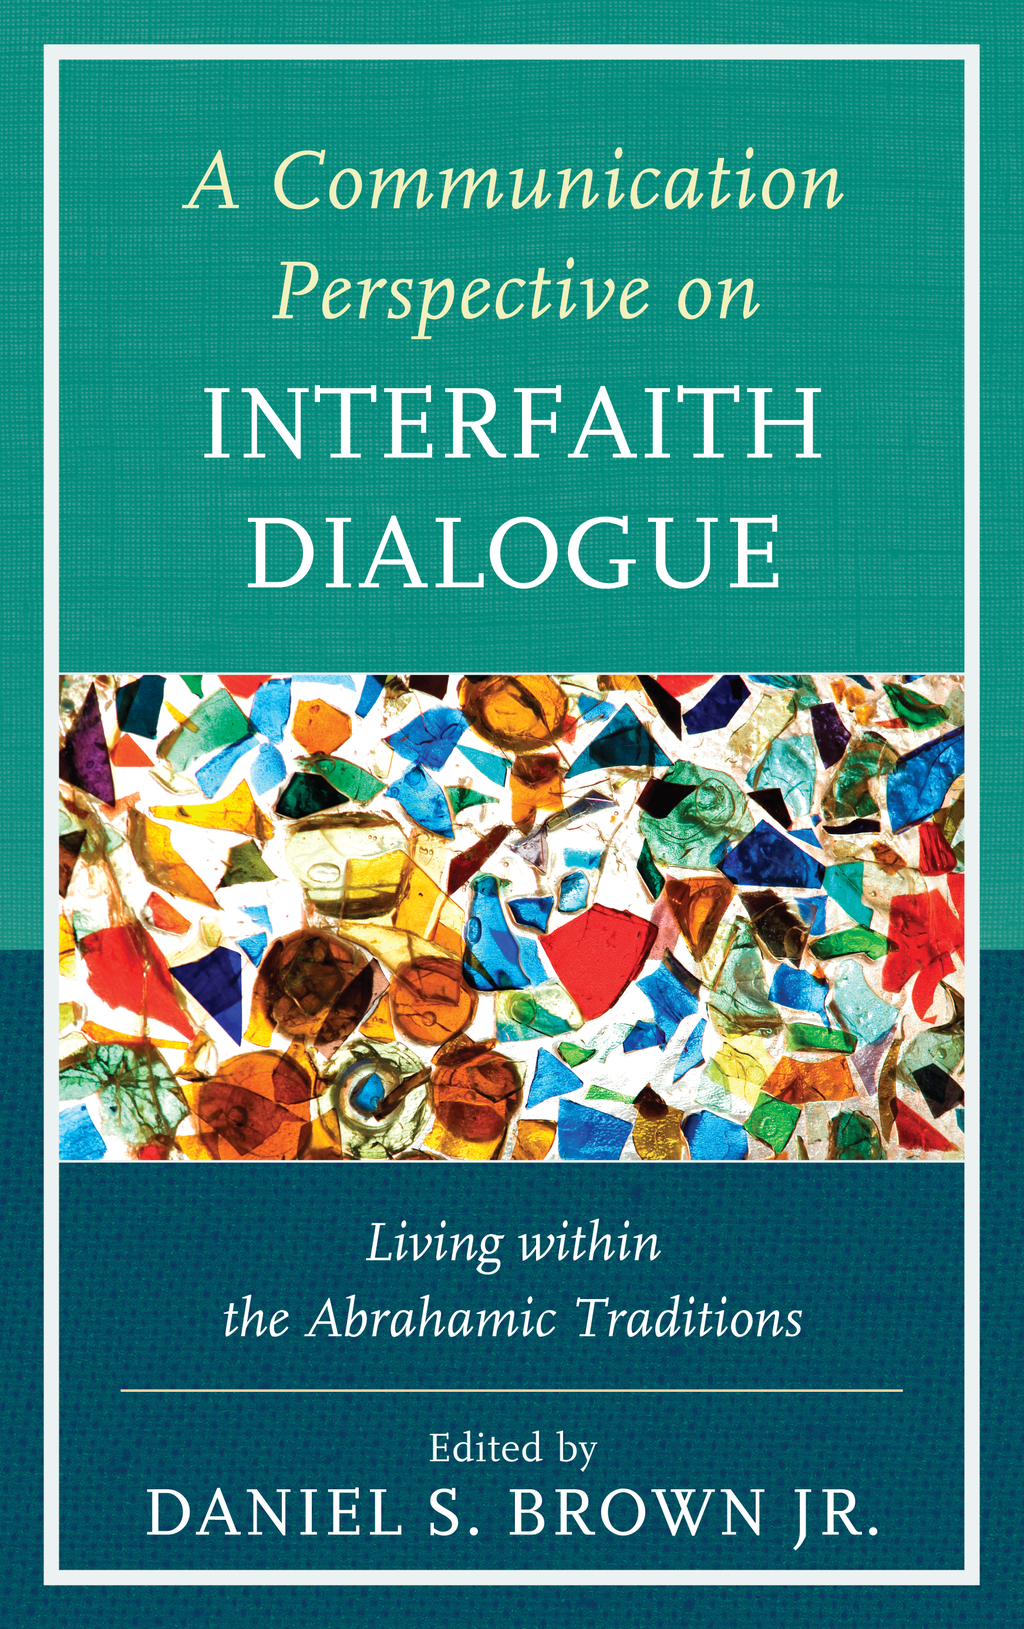 A Communication Perspective on Interfaith Dialogue